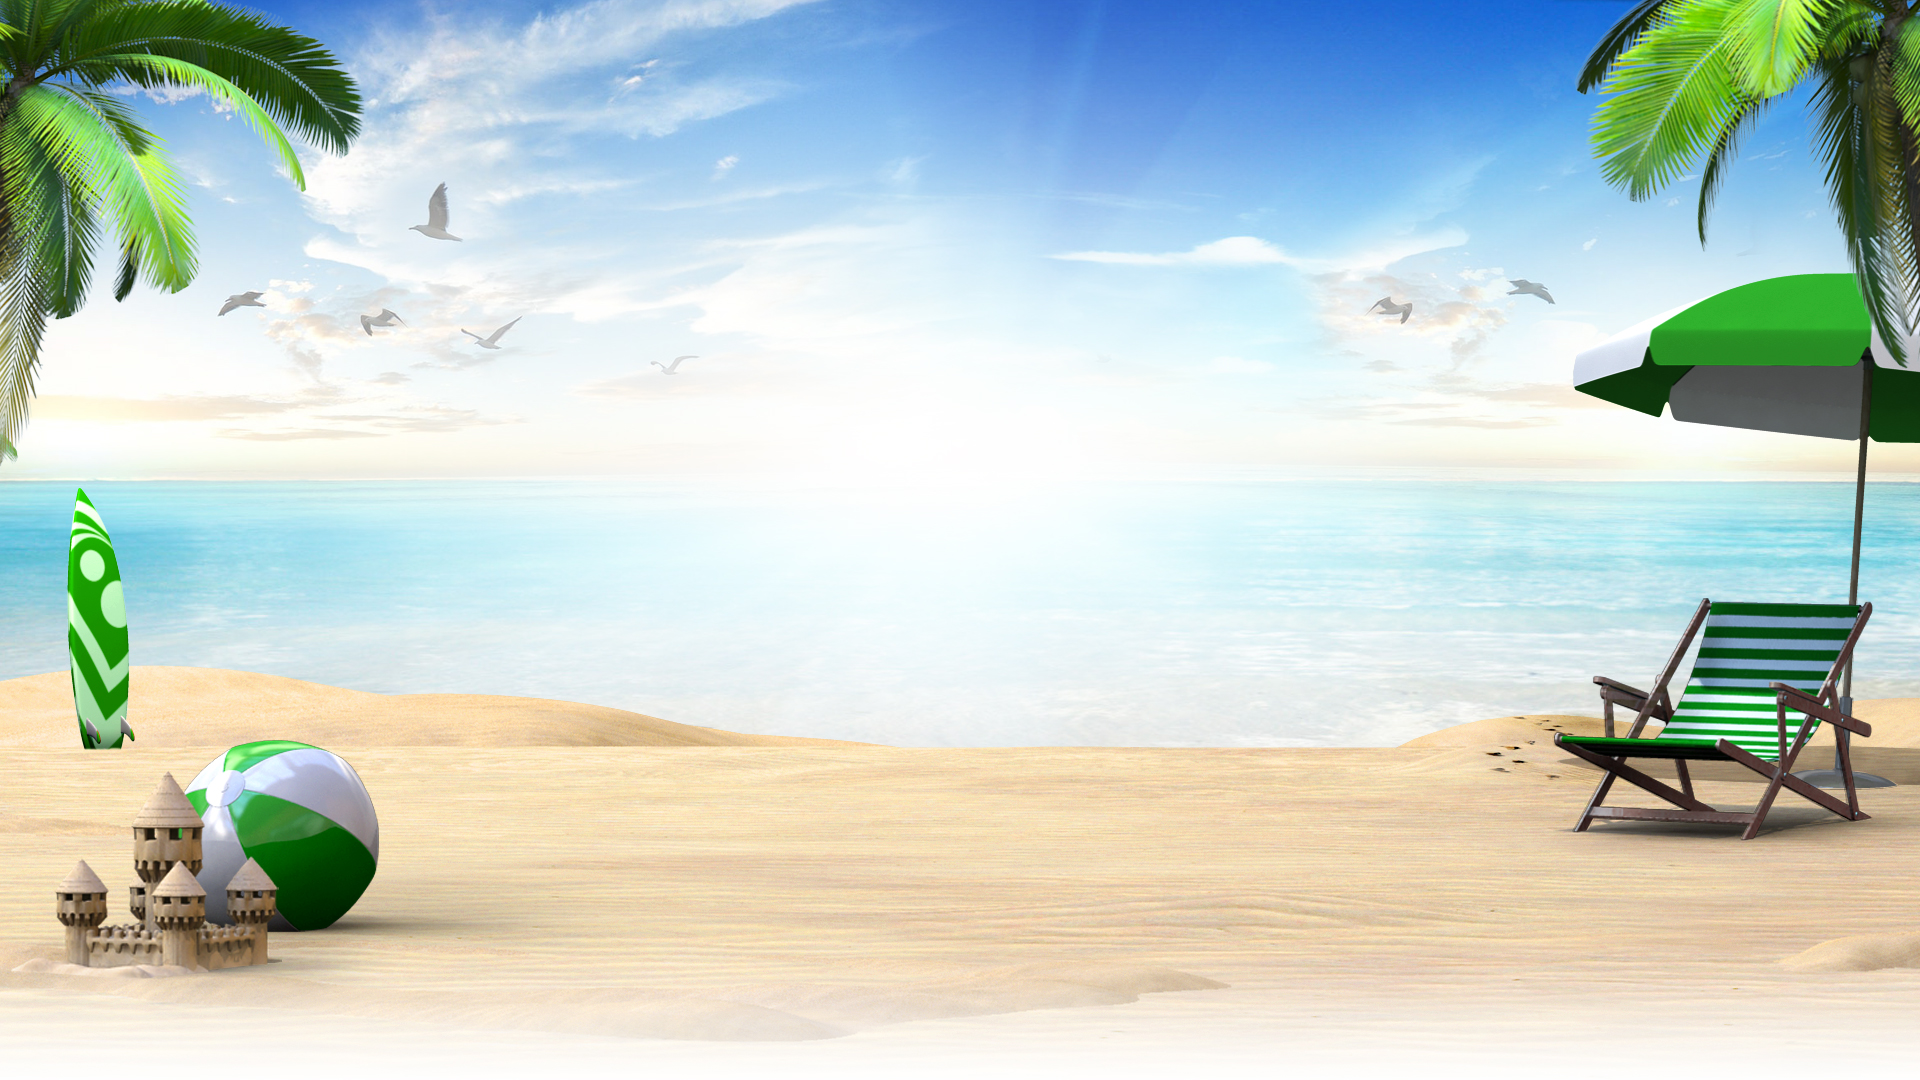 A tranquil beach scene with with seagulls flying over clear turquoise water